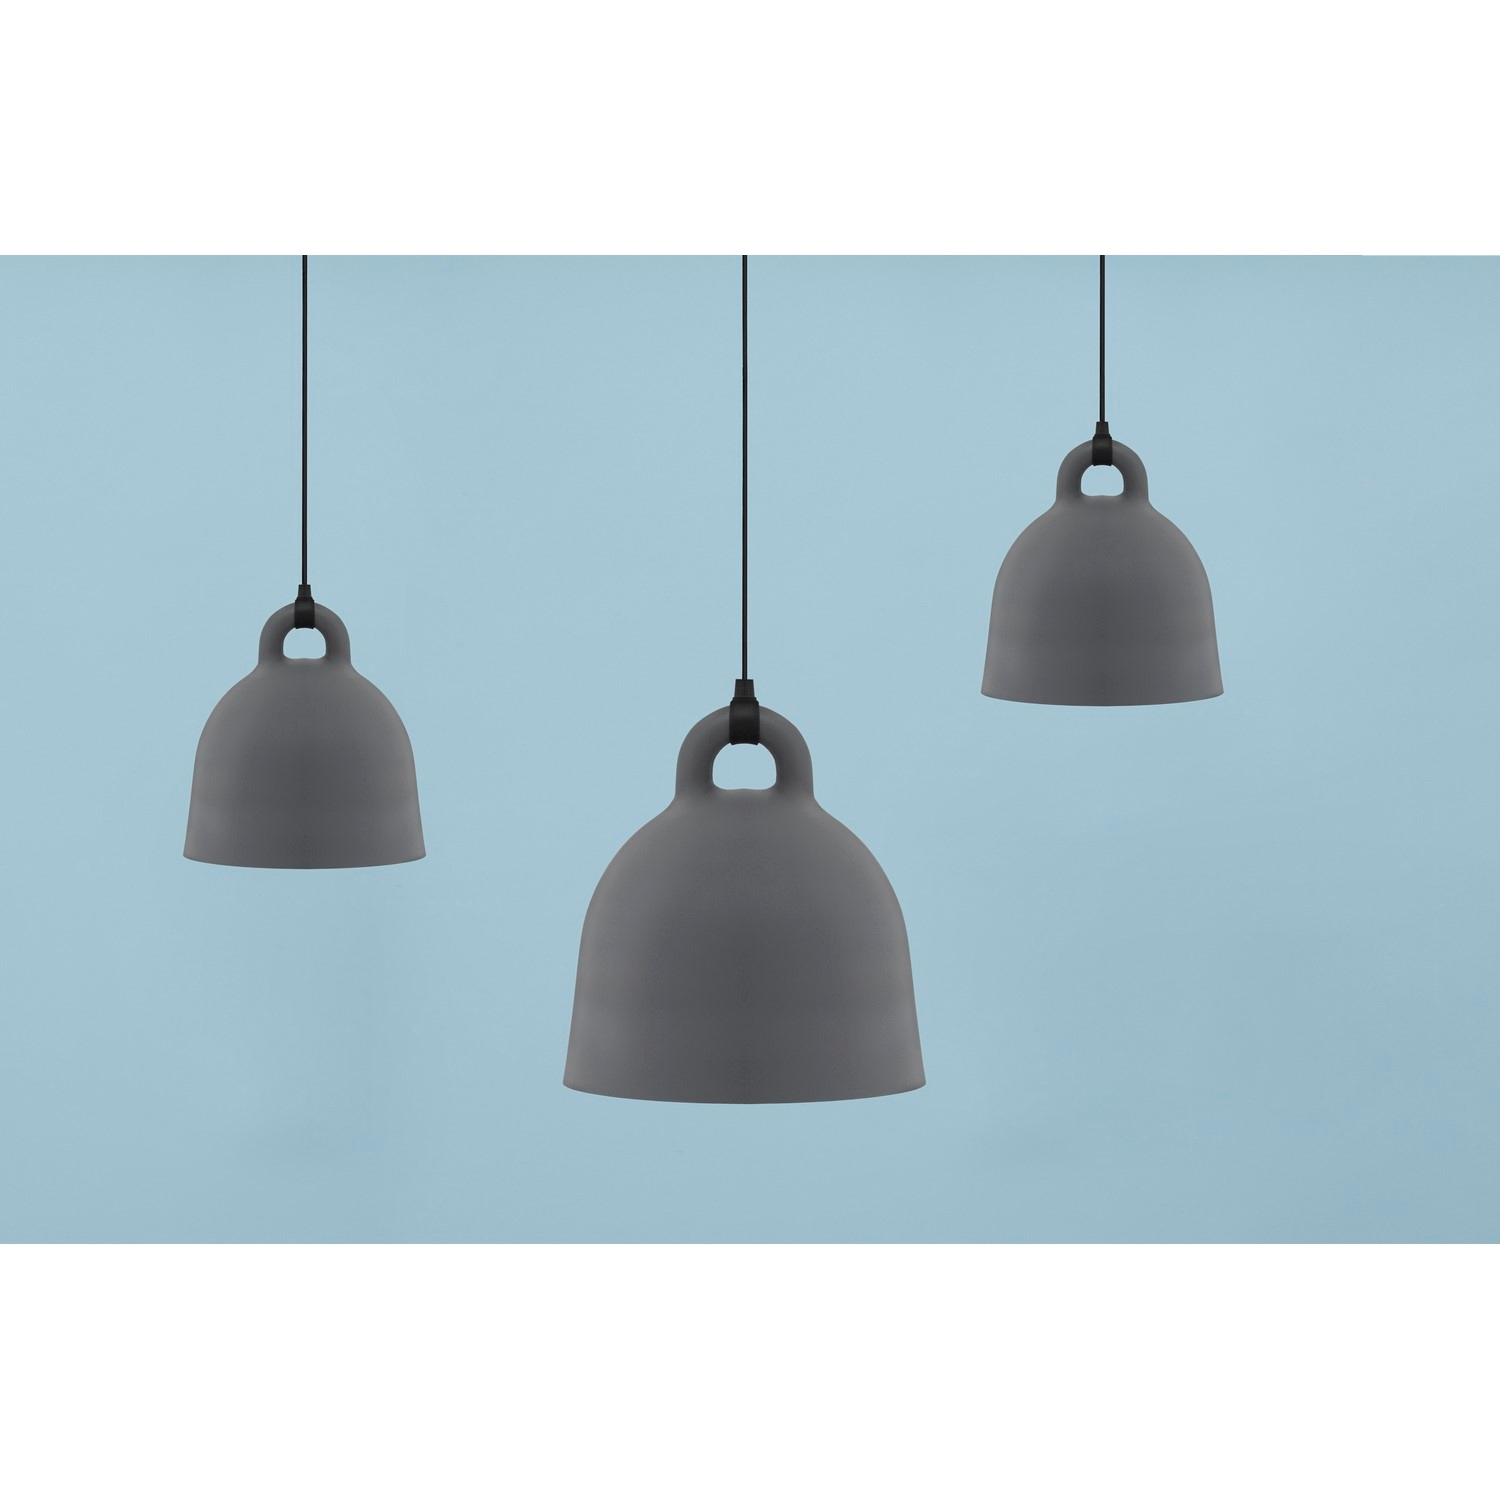 normann copenhagen bell lampe str l i gr k b her. Black Bedroom Furniture Sets. Home Design Ideas